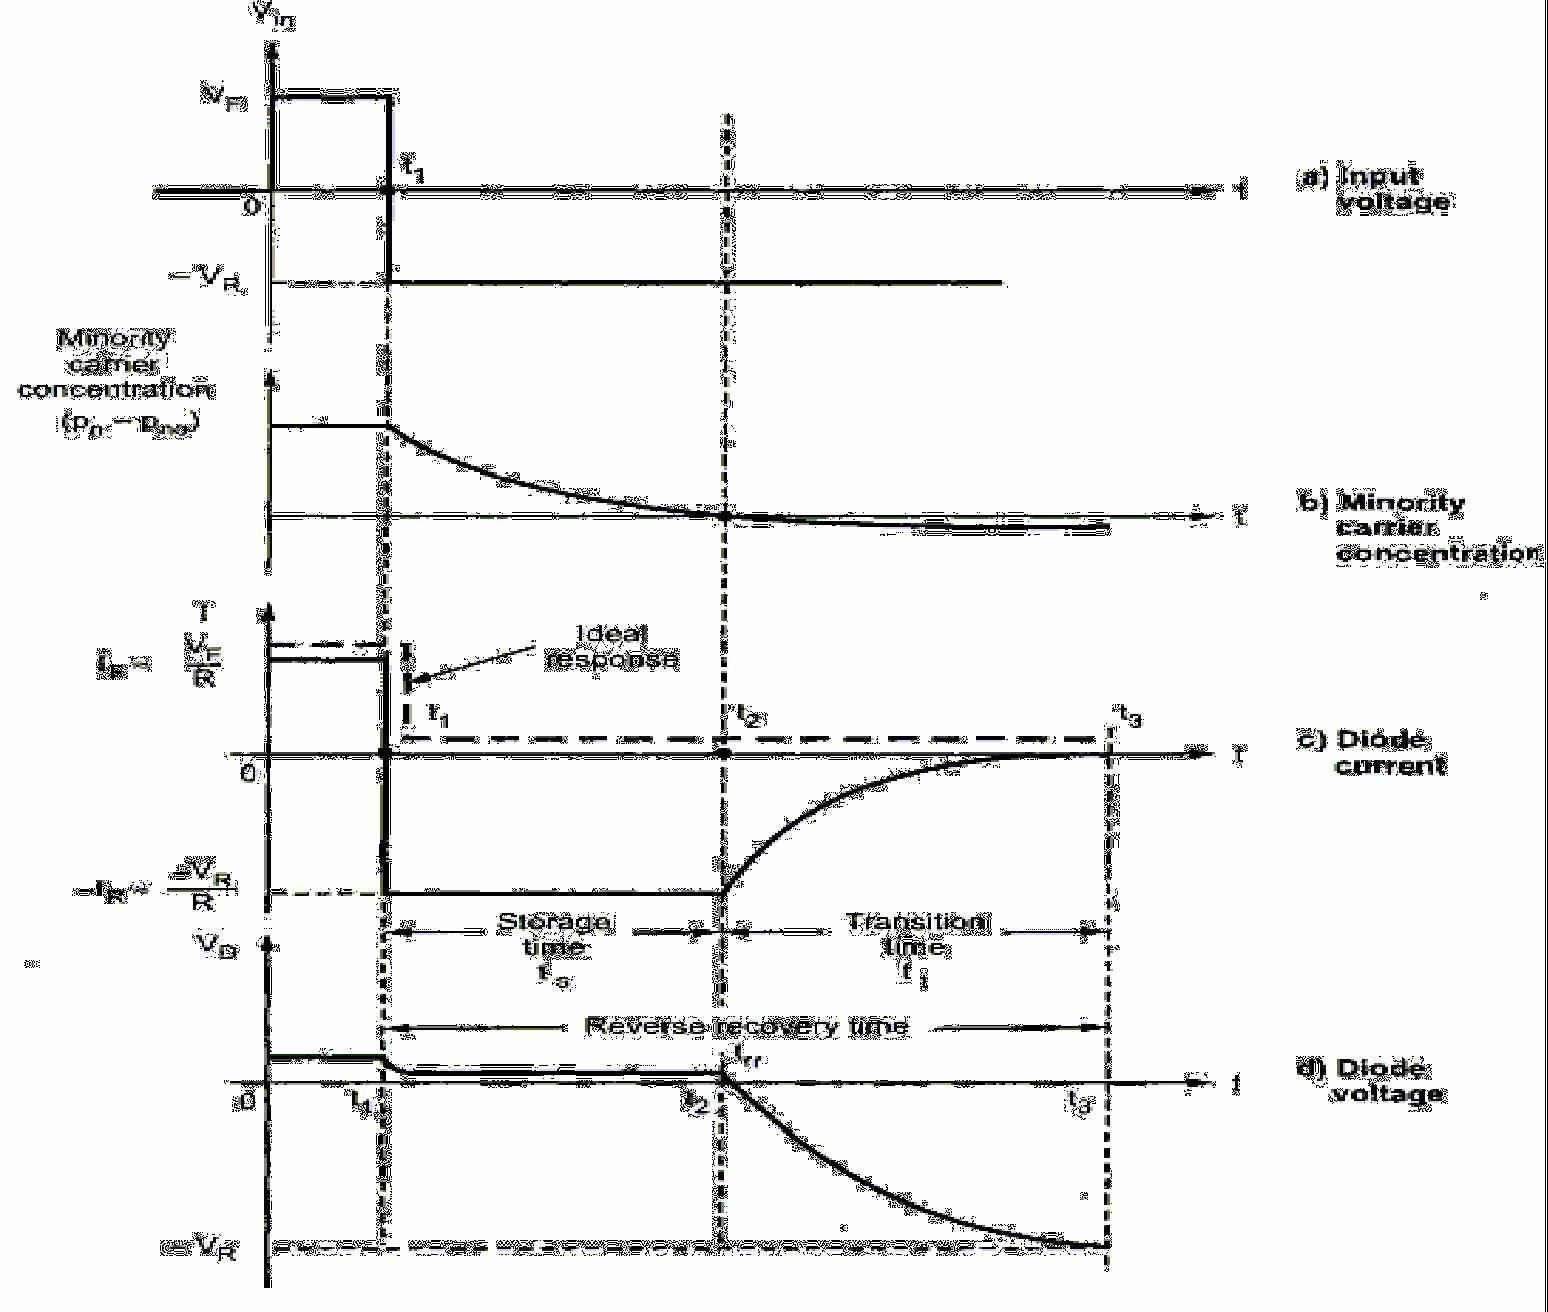 small resolution of the reverse recovery time depends on the rc time constant where c is a transition capacitance of a diode thus the transition capacitance plays an important